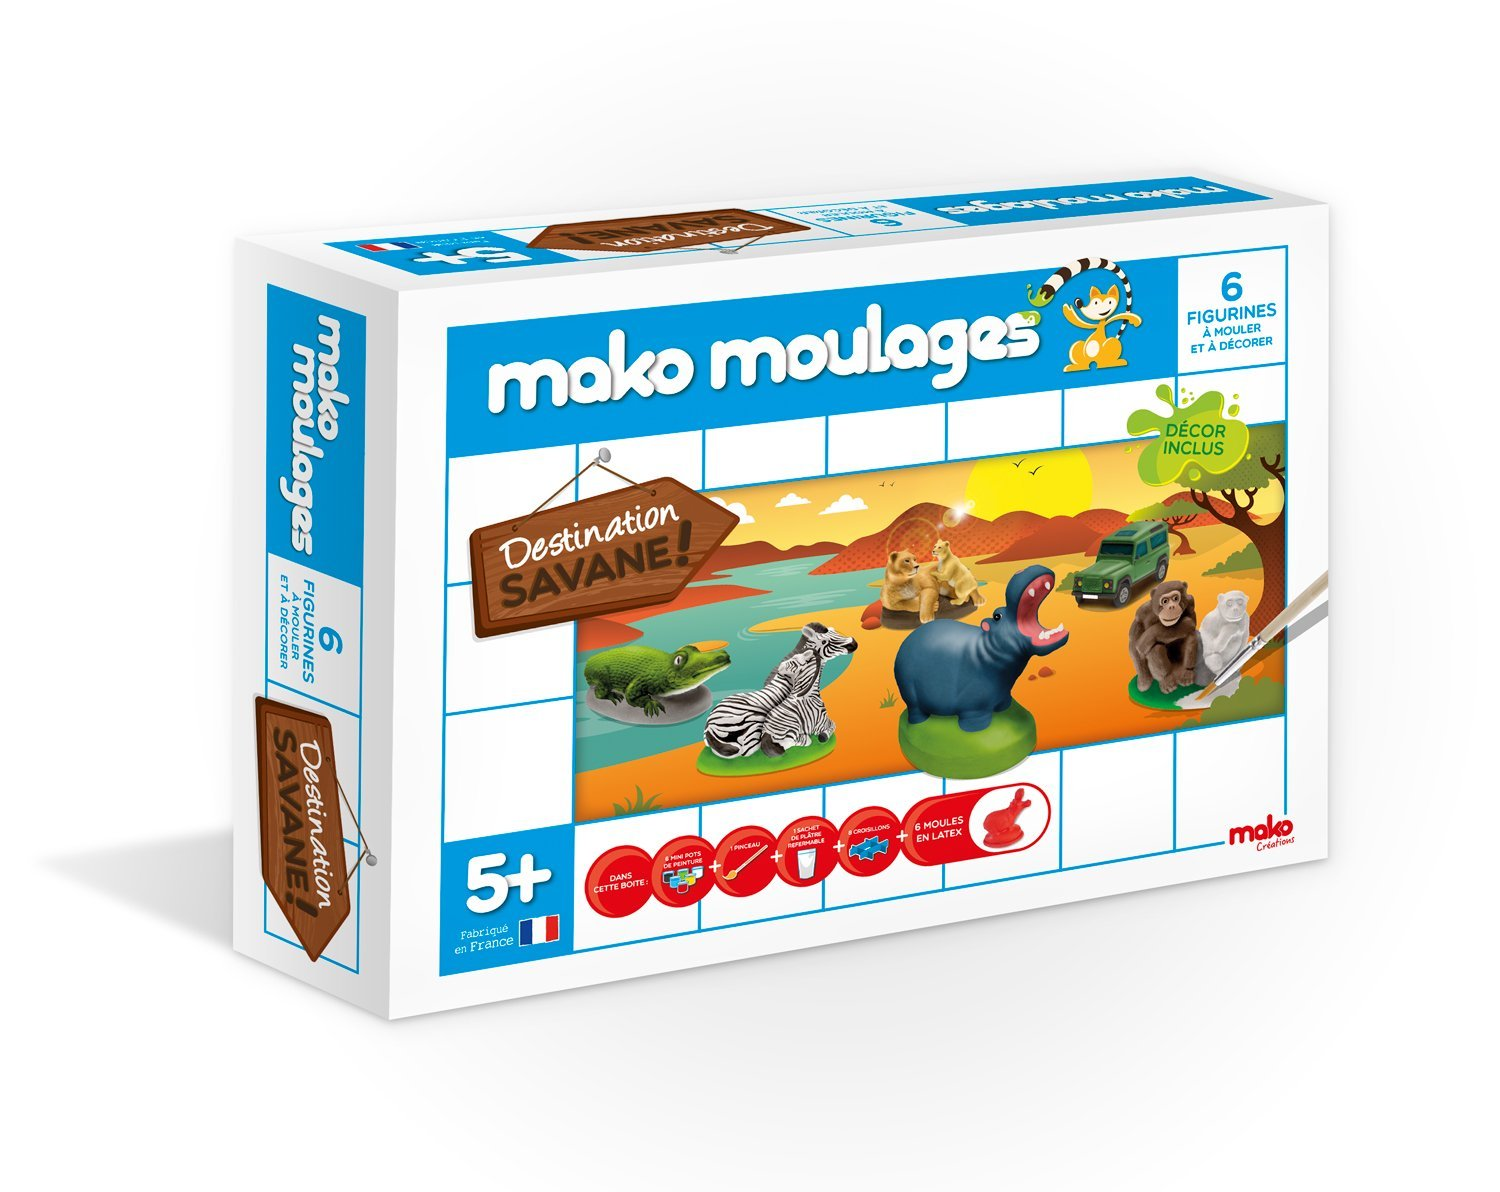 Jouets Moulages made in France